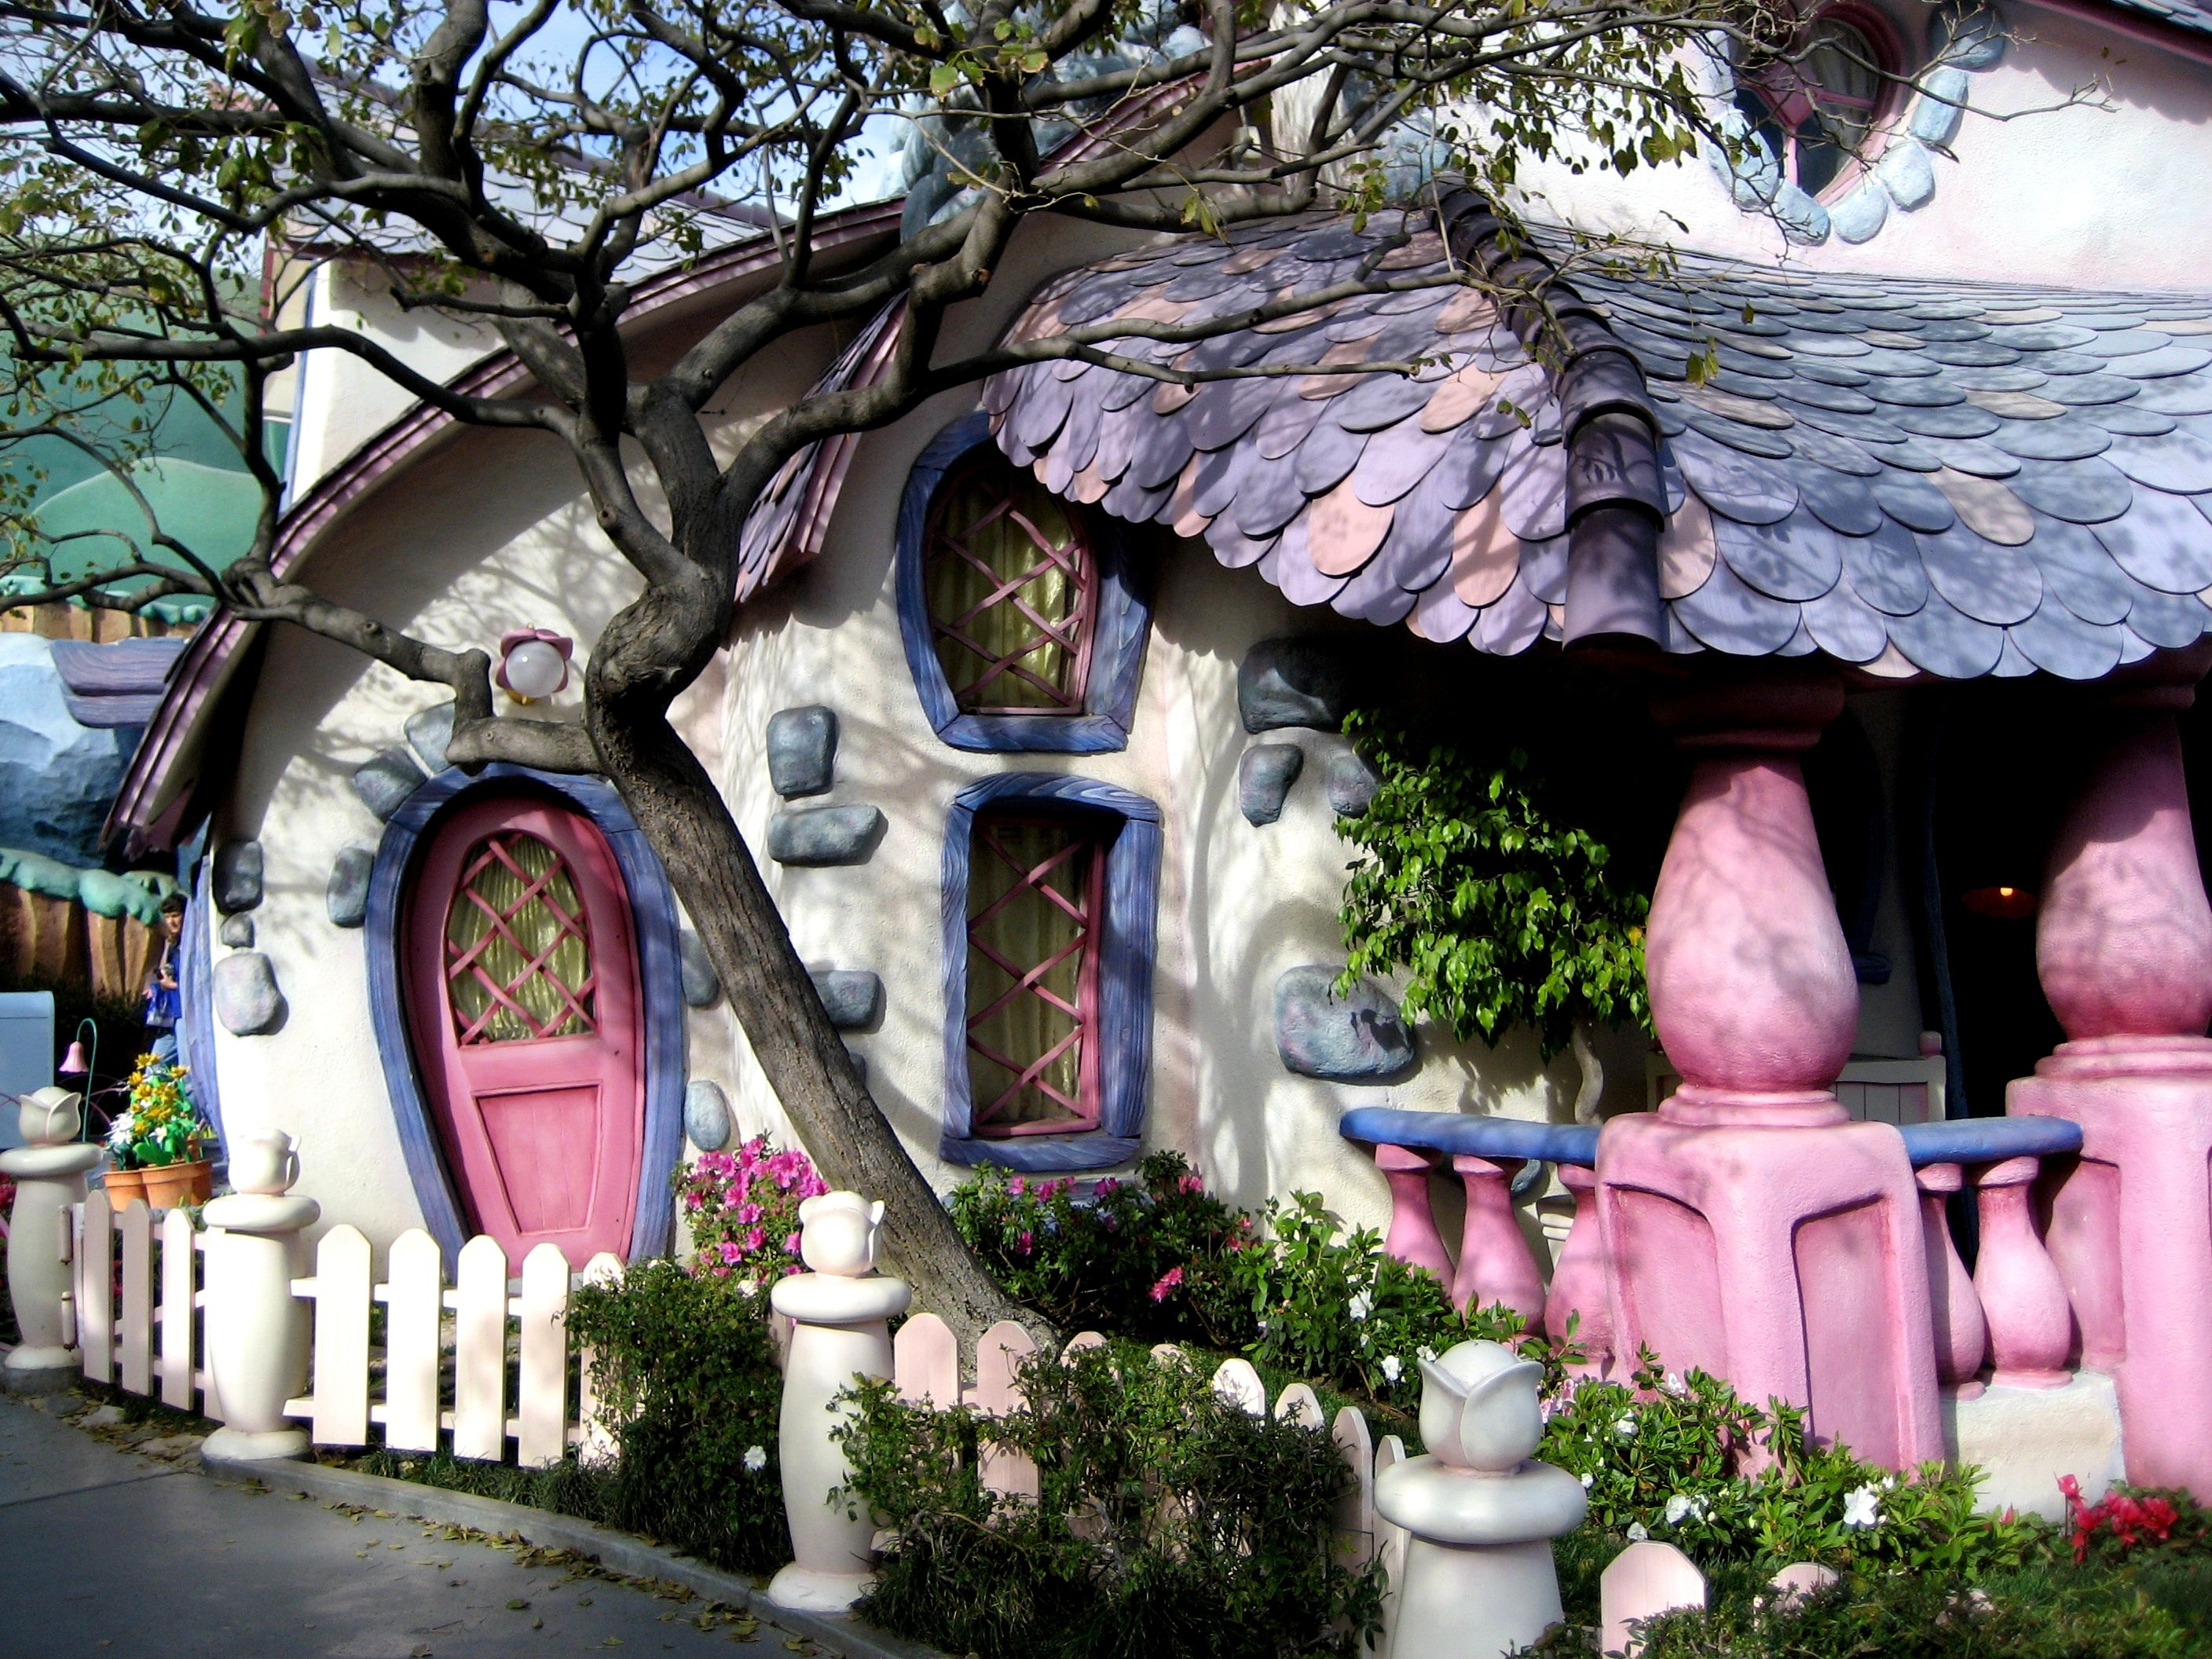 Share for Hobbit style playhouse